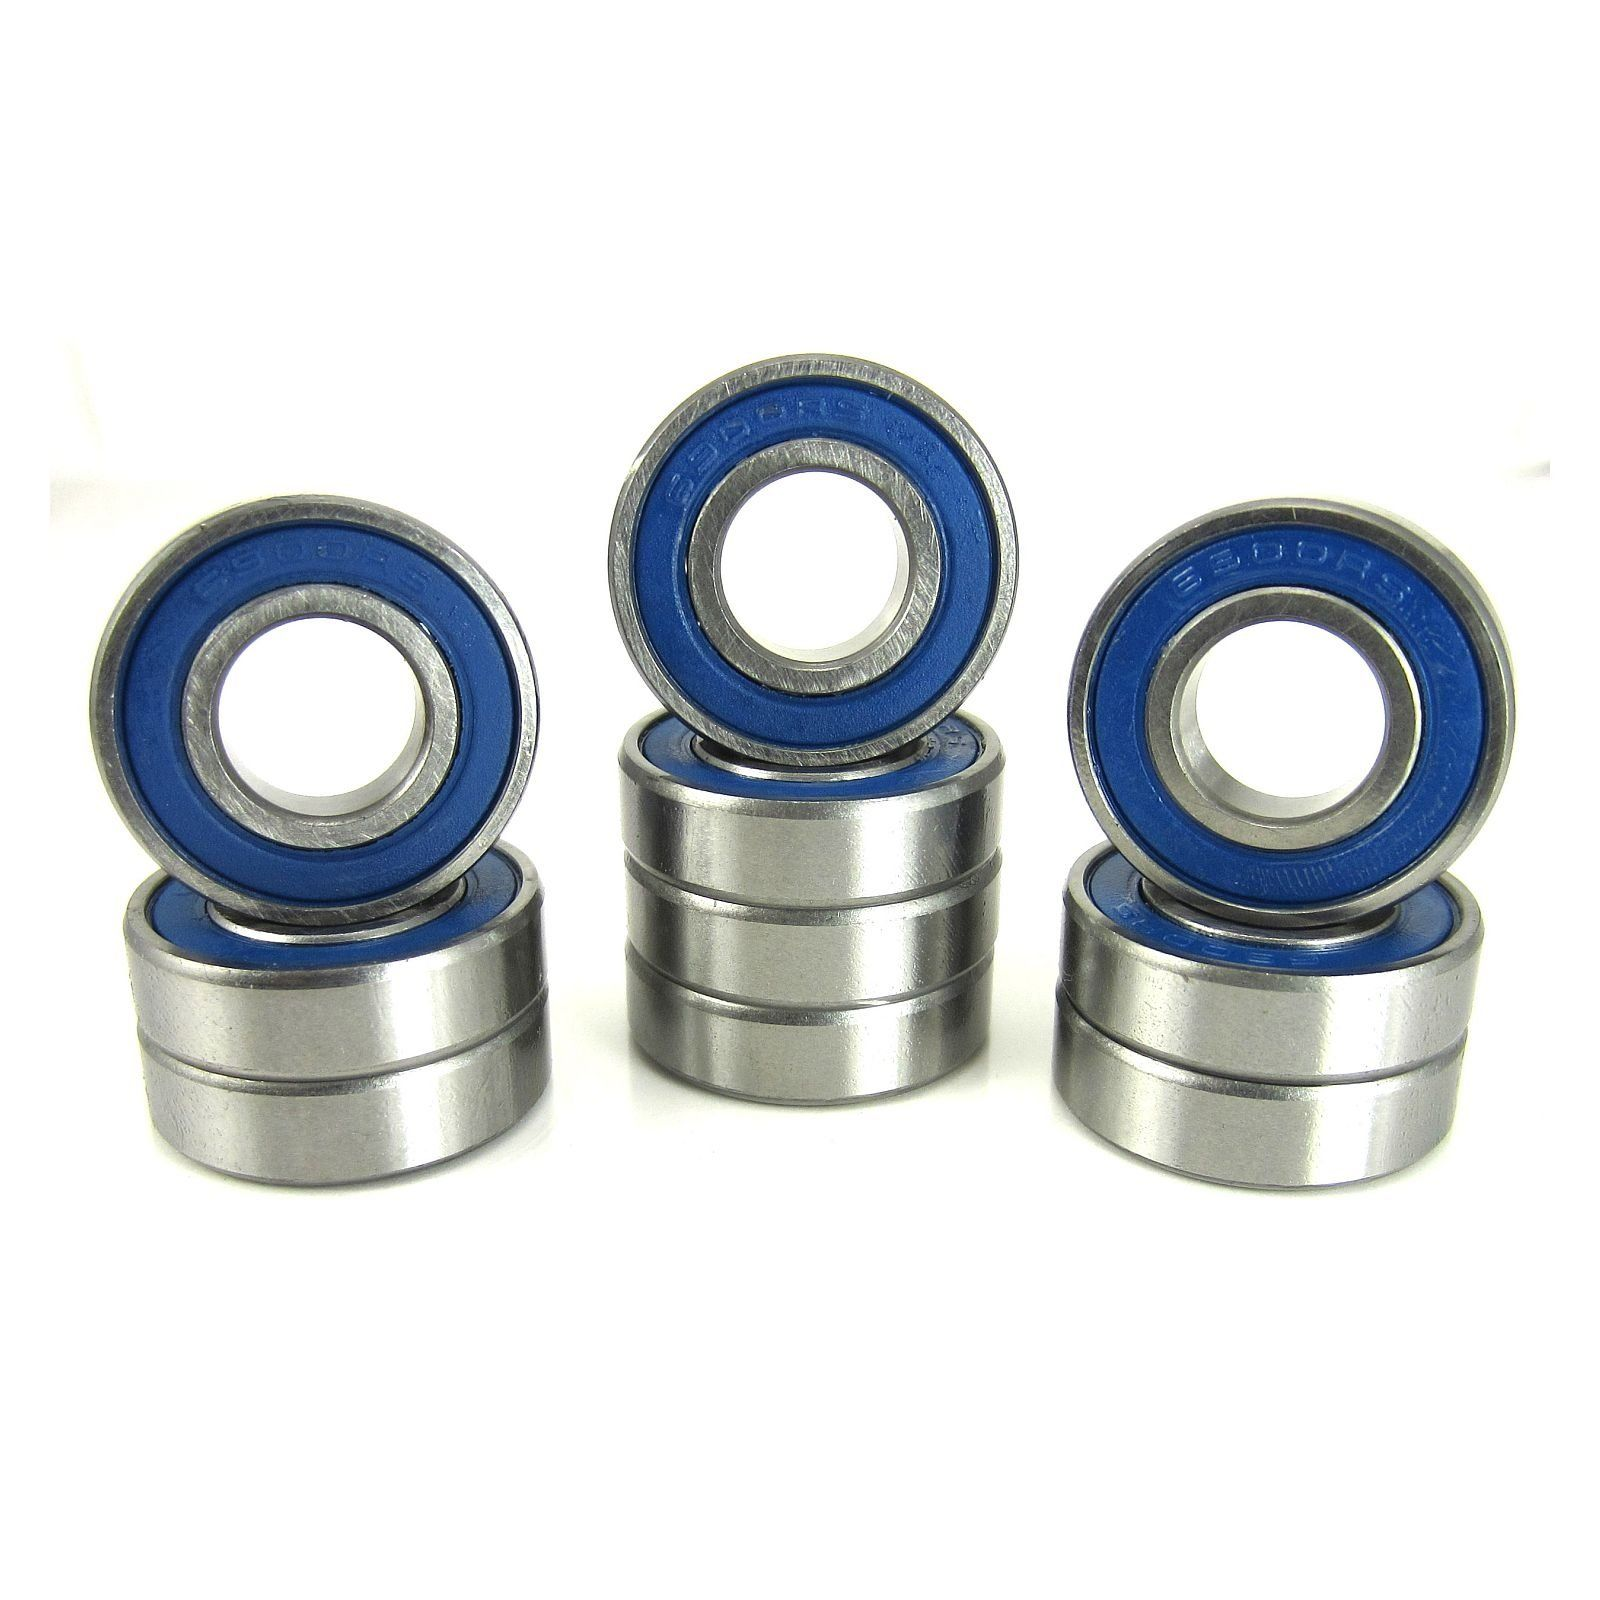 TRB RC 10x22x6mm Precision Ball Bearings ABEC 3 BLU Rubber Seals (10) - trb-rc-bearings